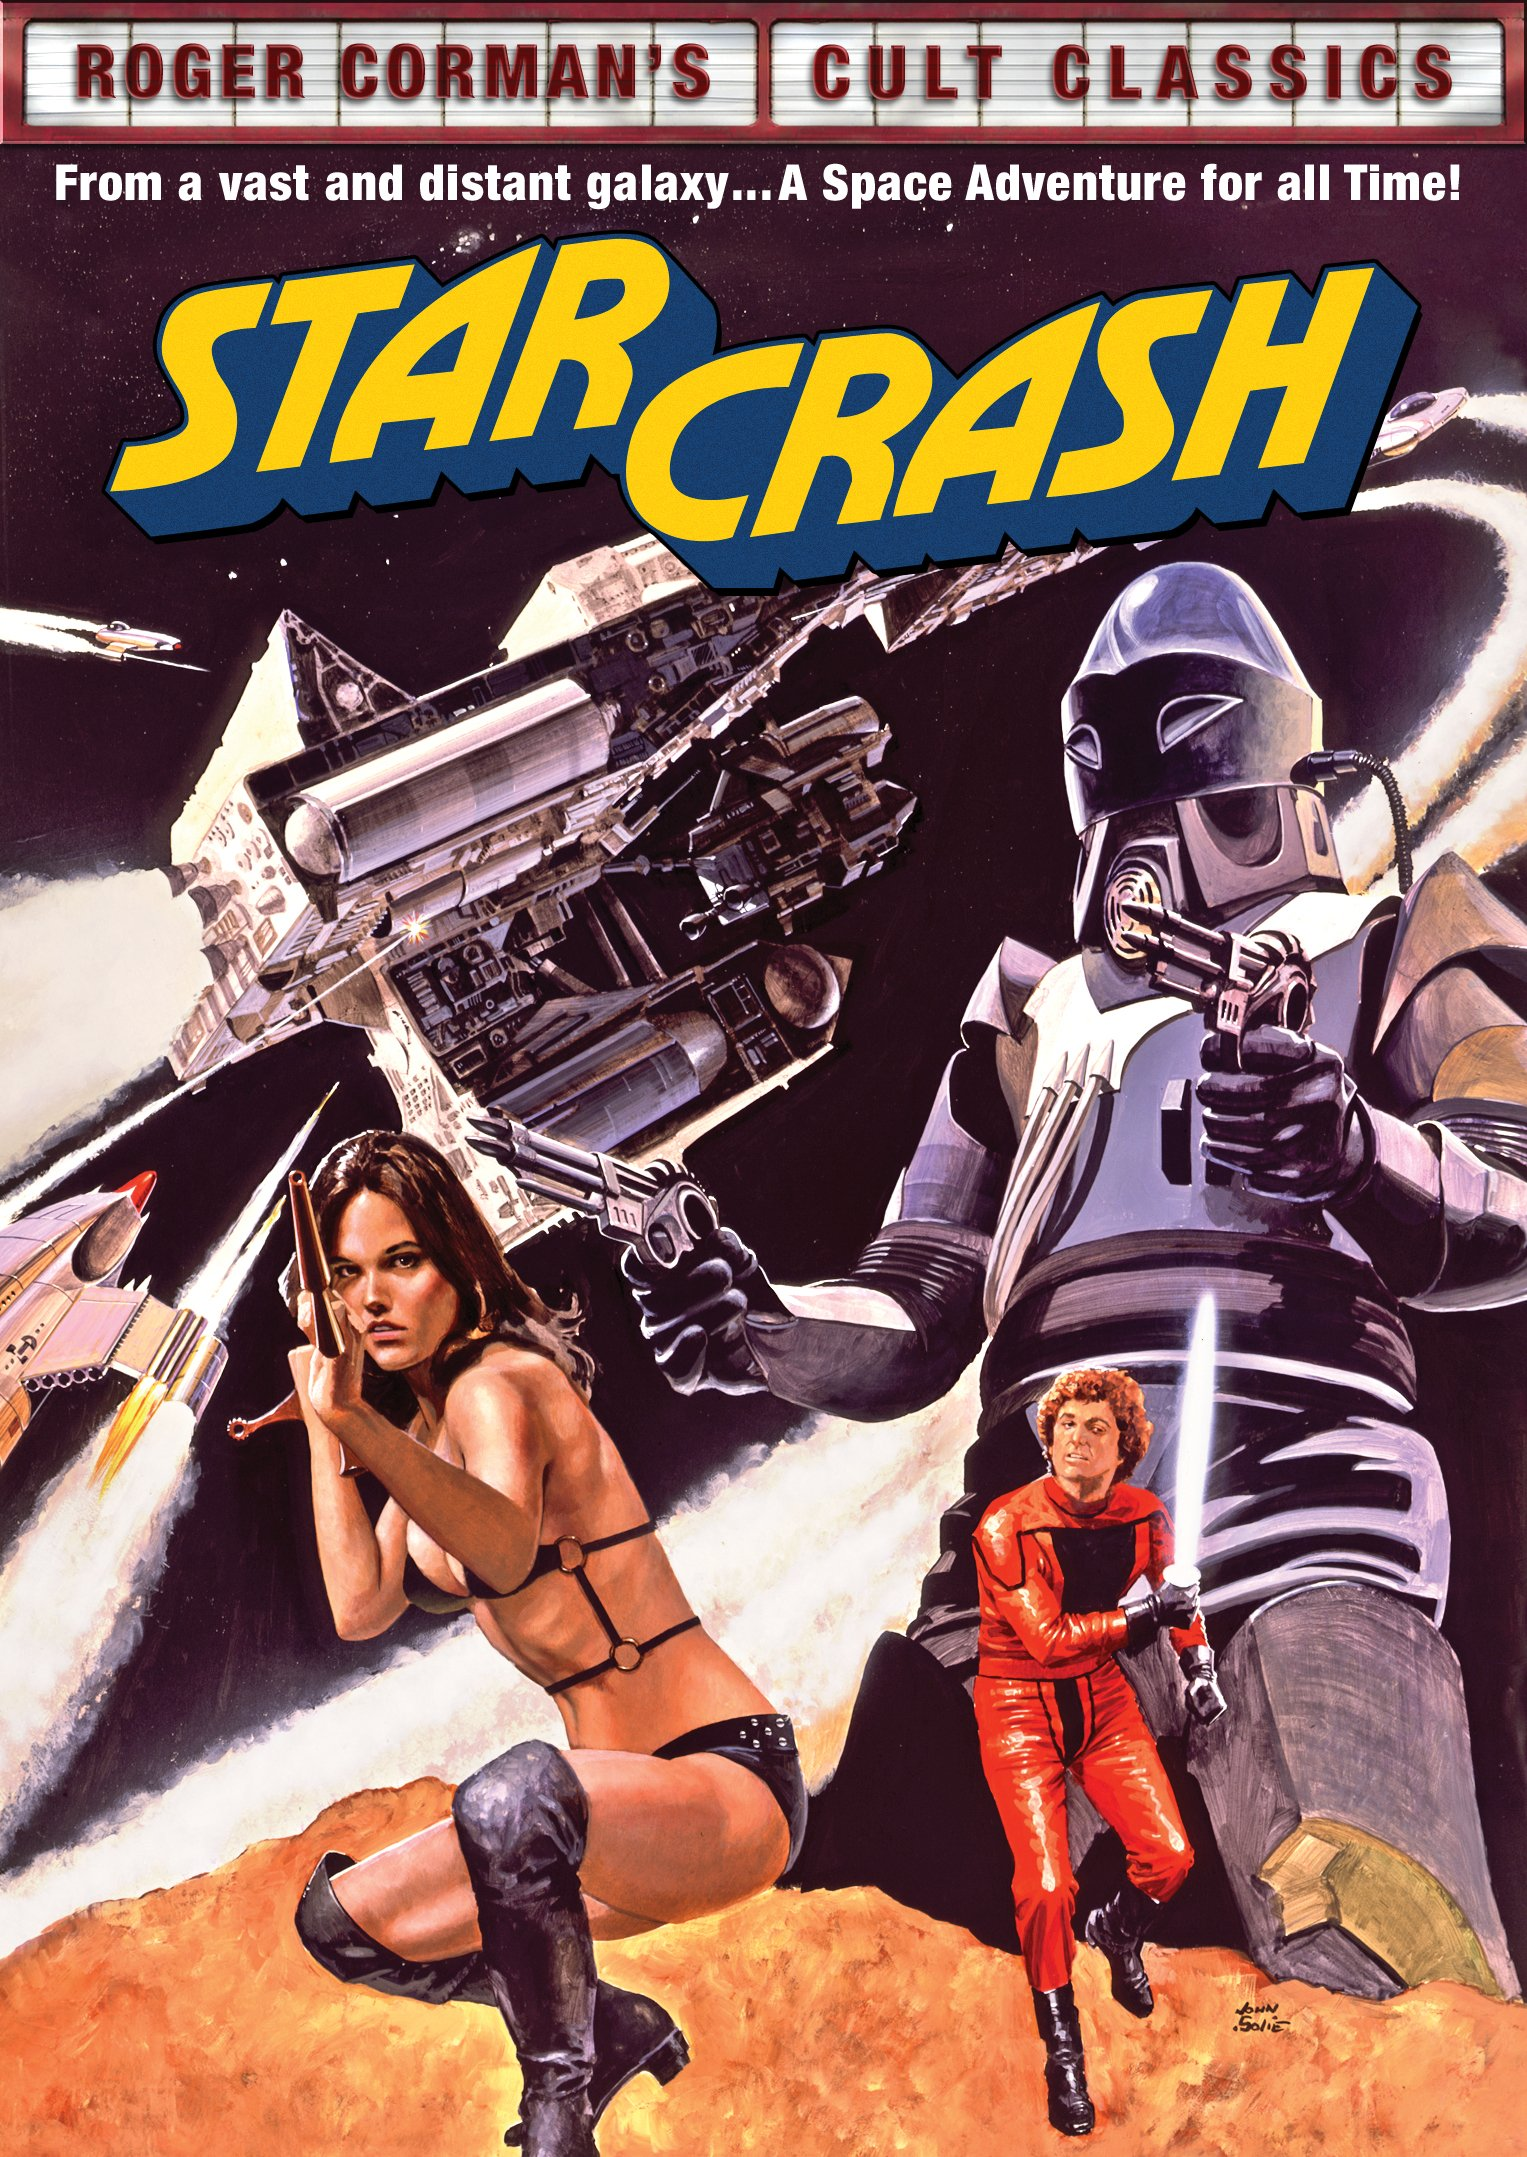 Dragon Con 2015 Scifi Drive-In Theater Heckle-Along – Starcrash